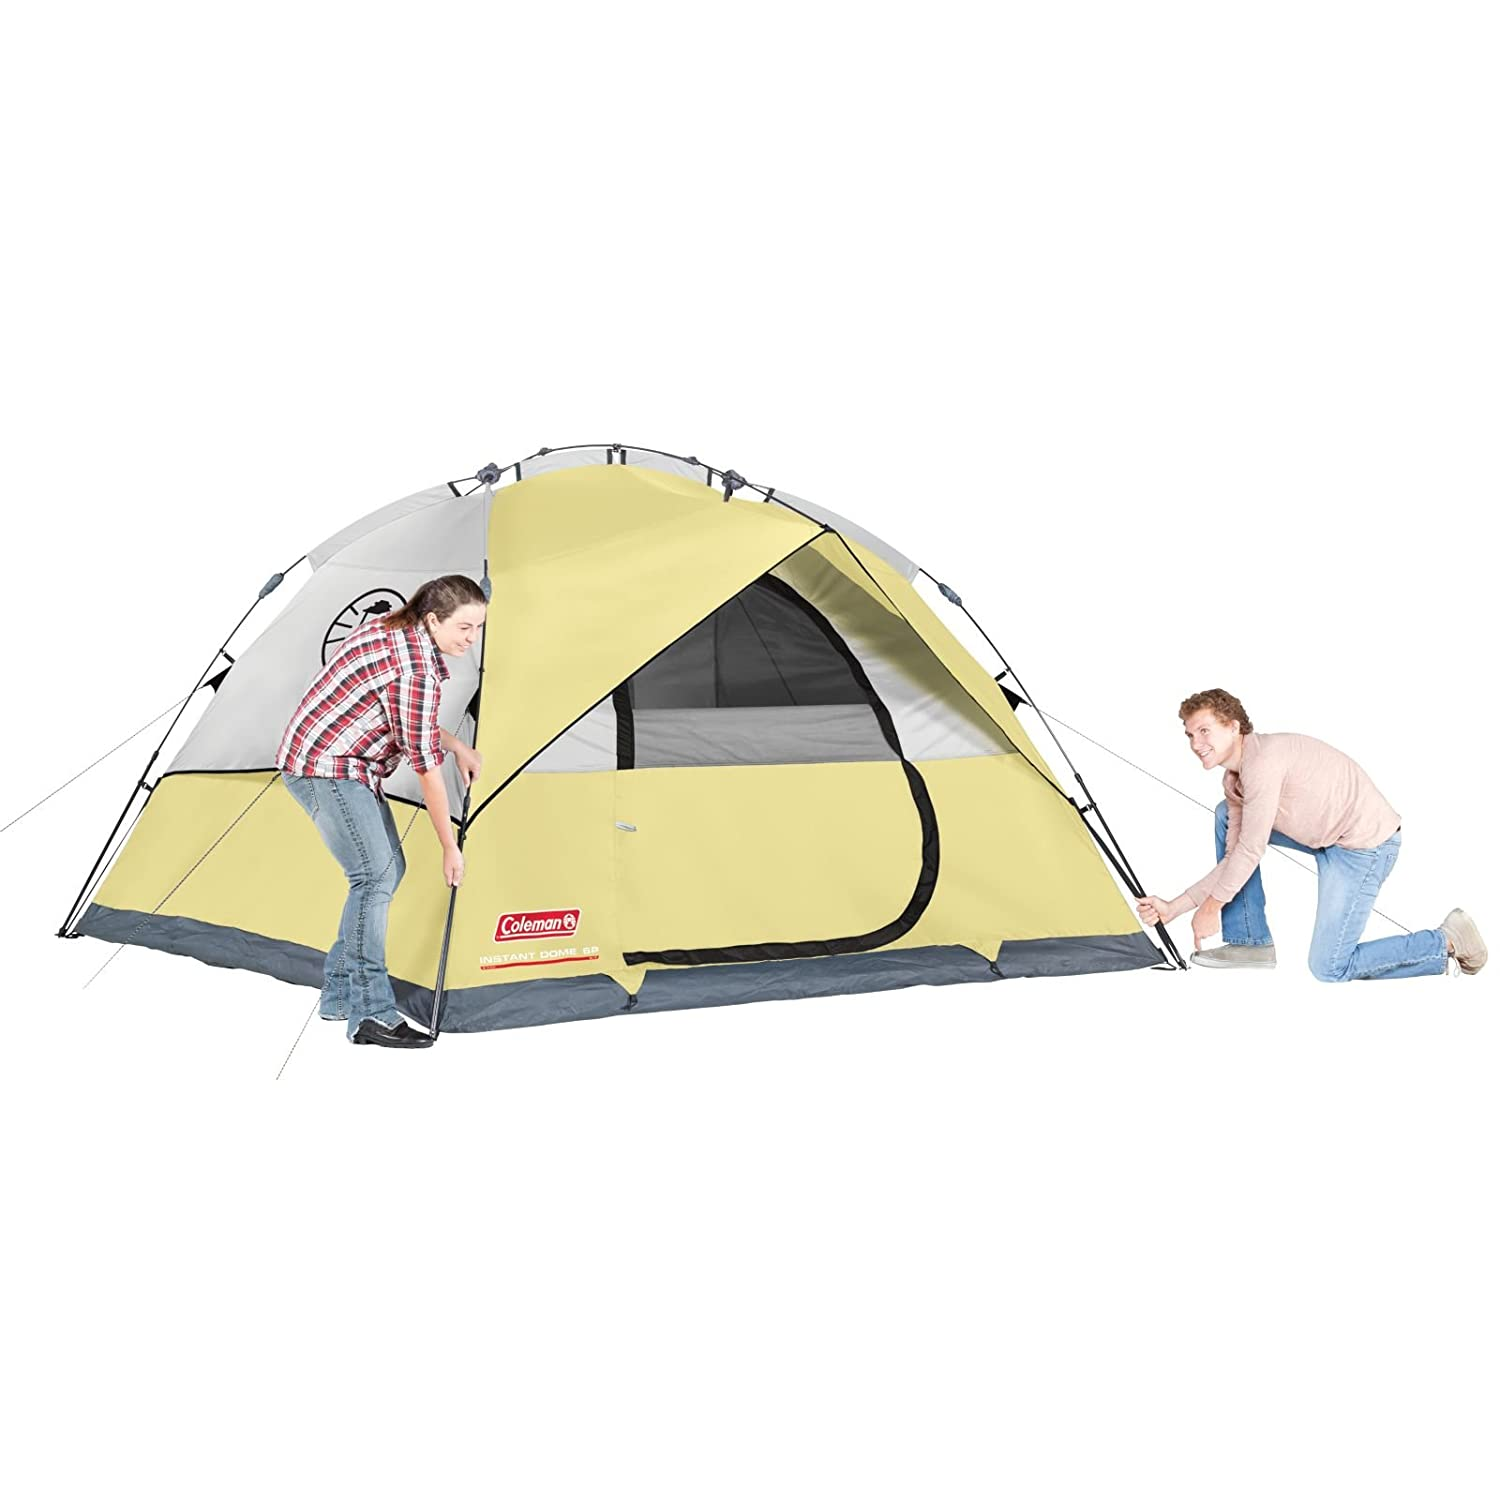 sc 1 st  Amazon.ca & Coleman Instant Dome Tent: Amazon.ca: Sports u0026 Outdoors